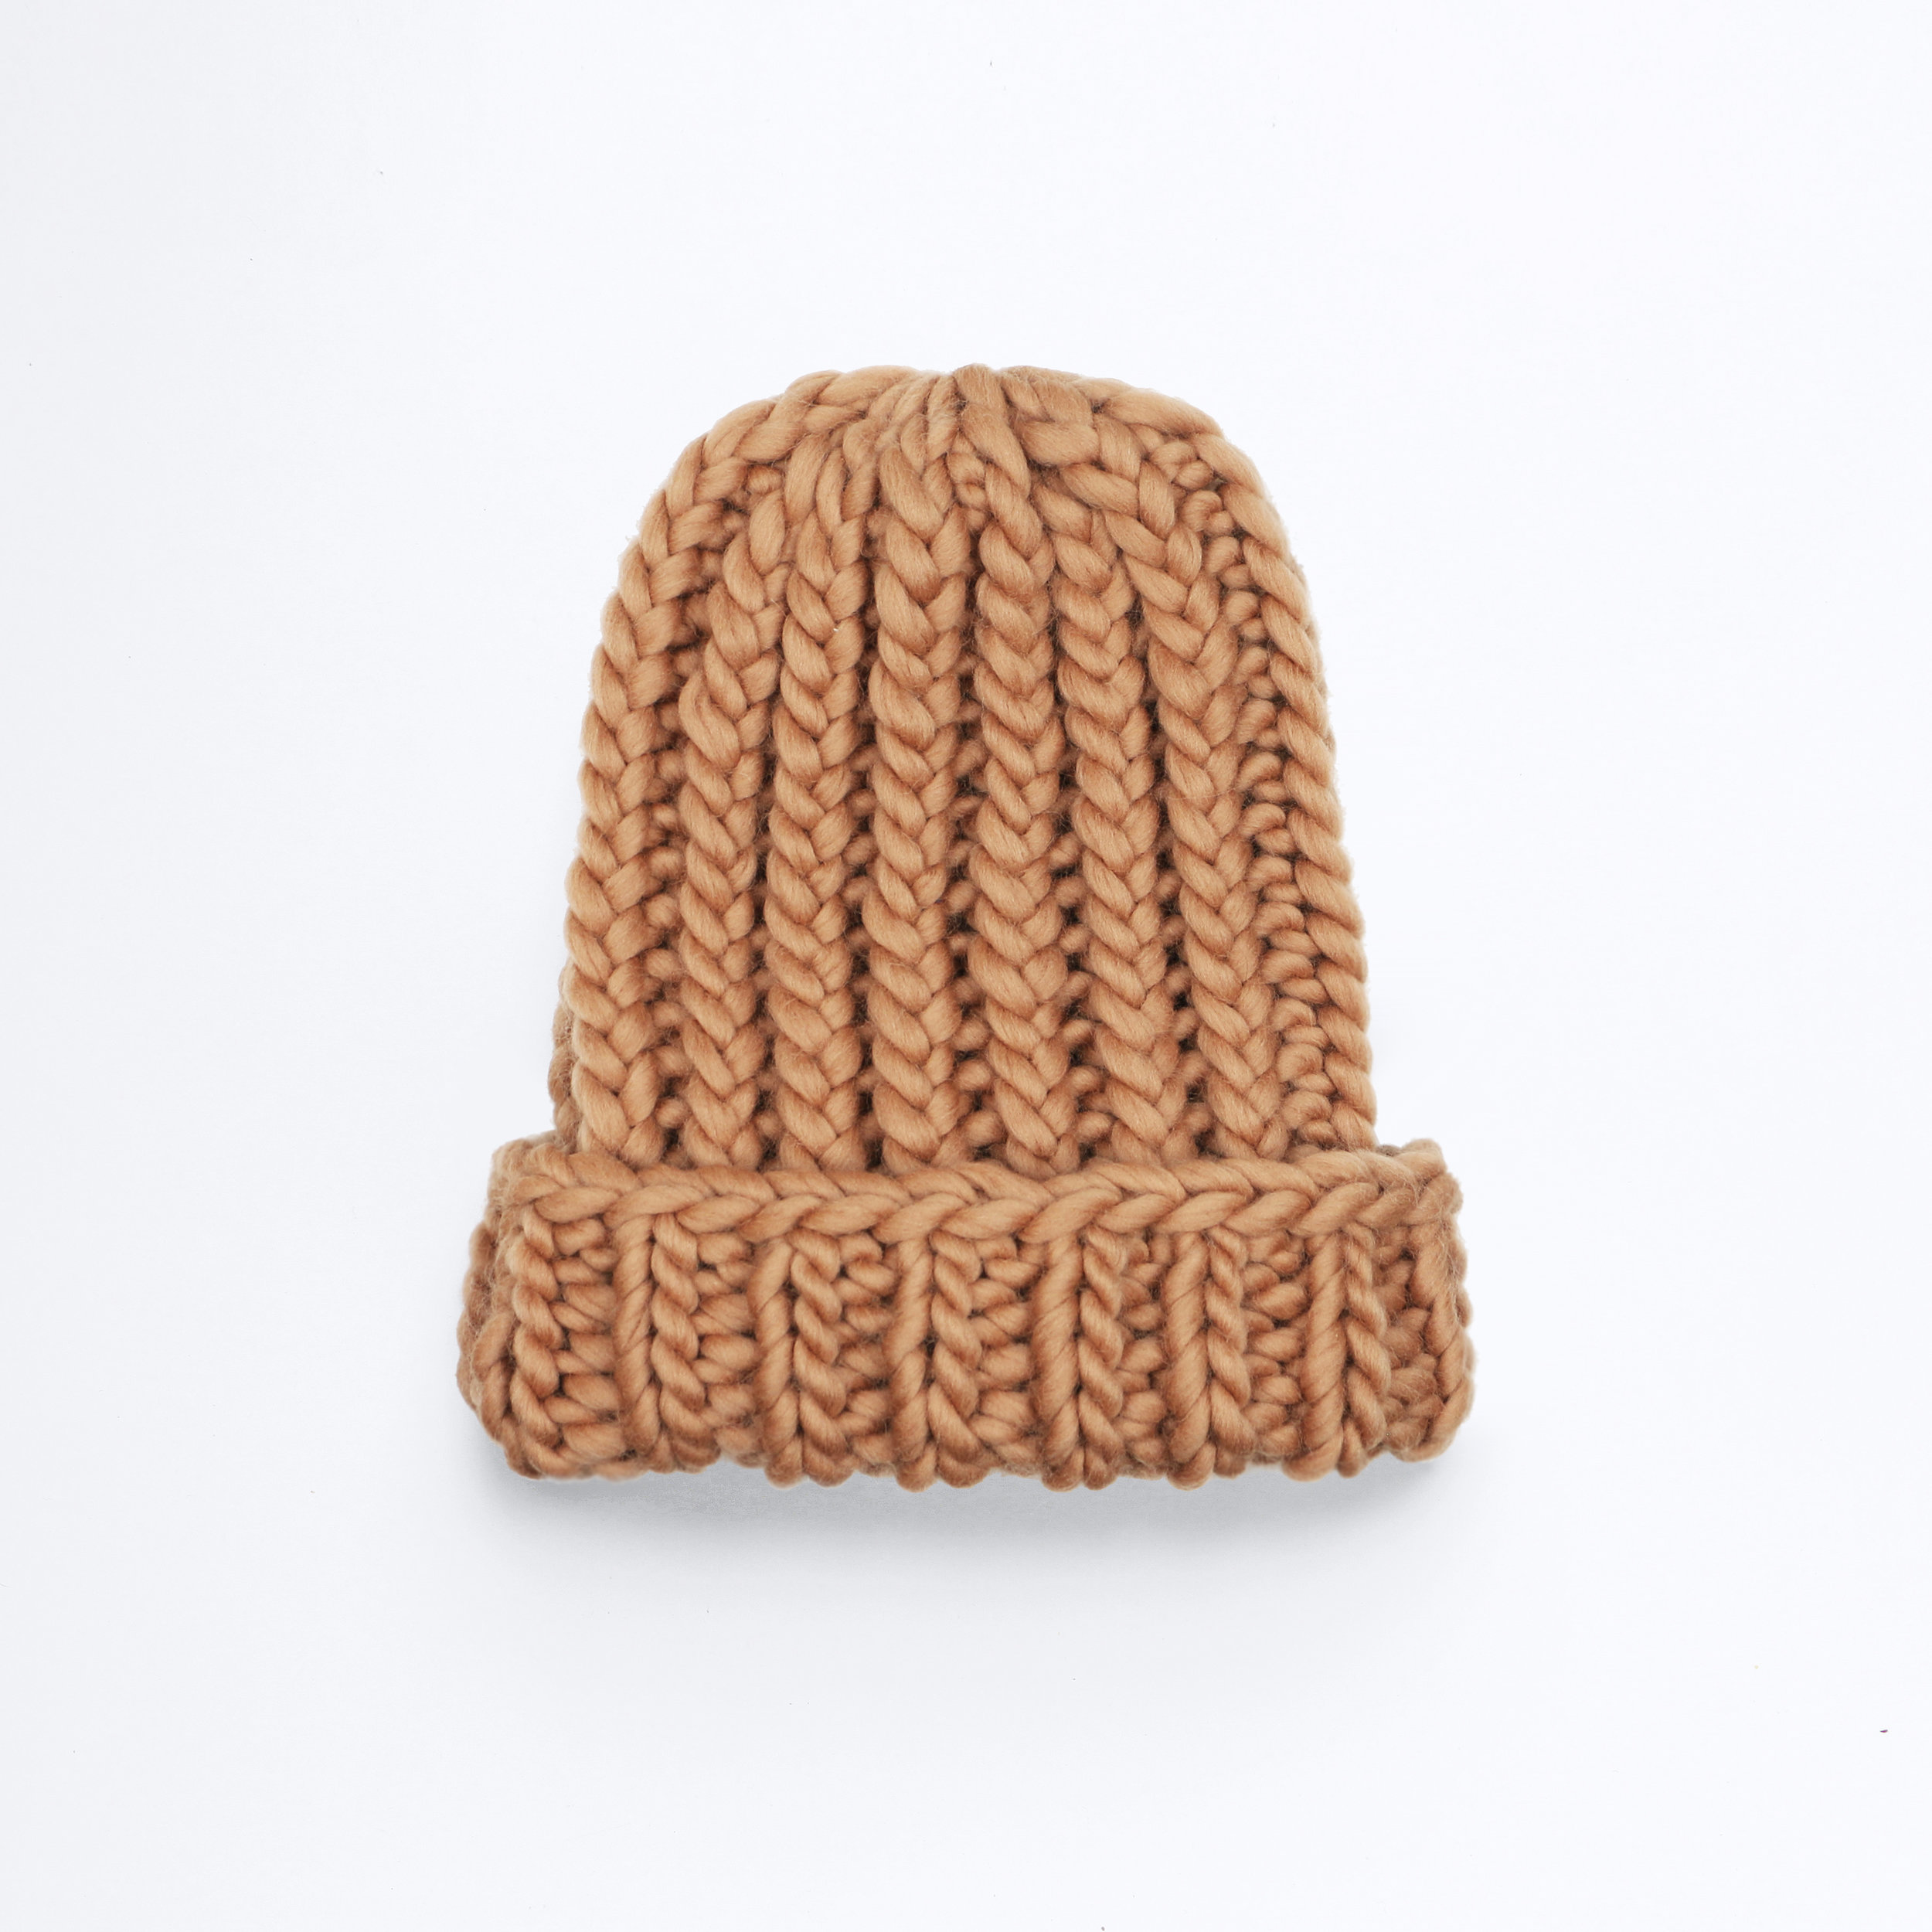 THE BIGGER THE BETTER BEANIE - Caramel